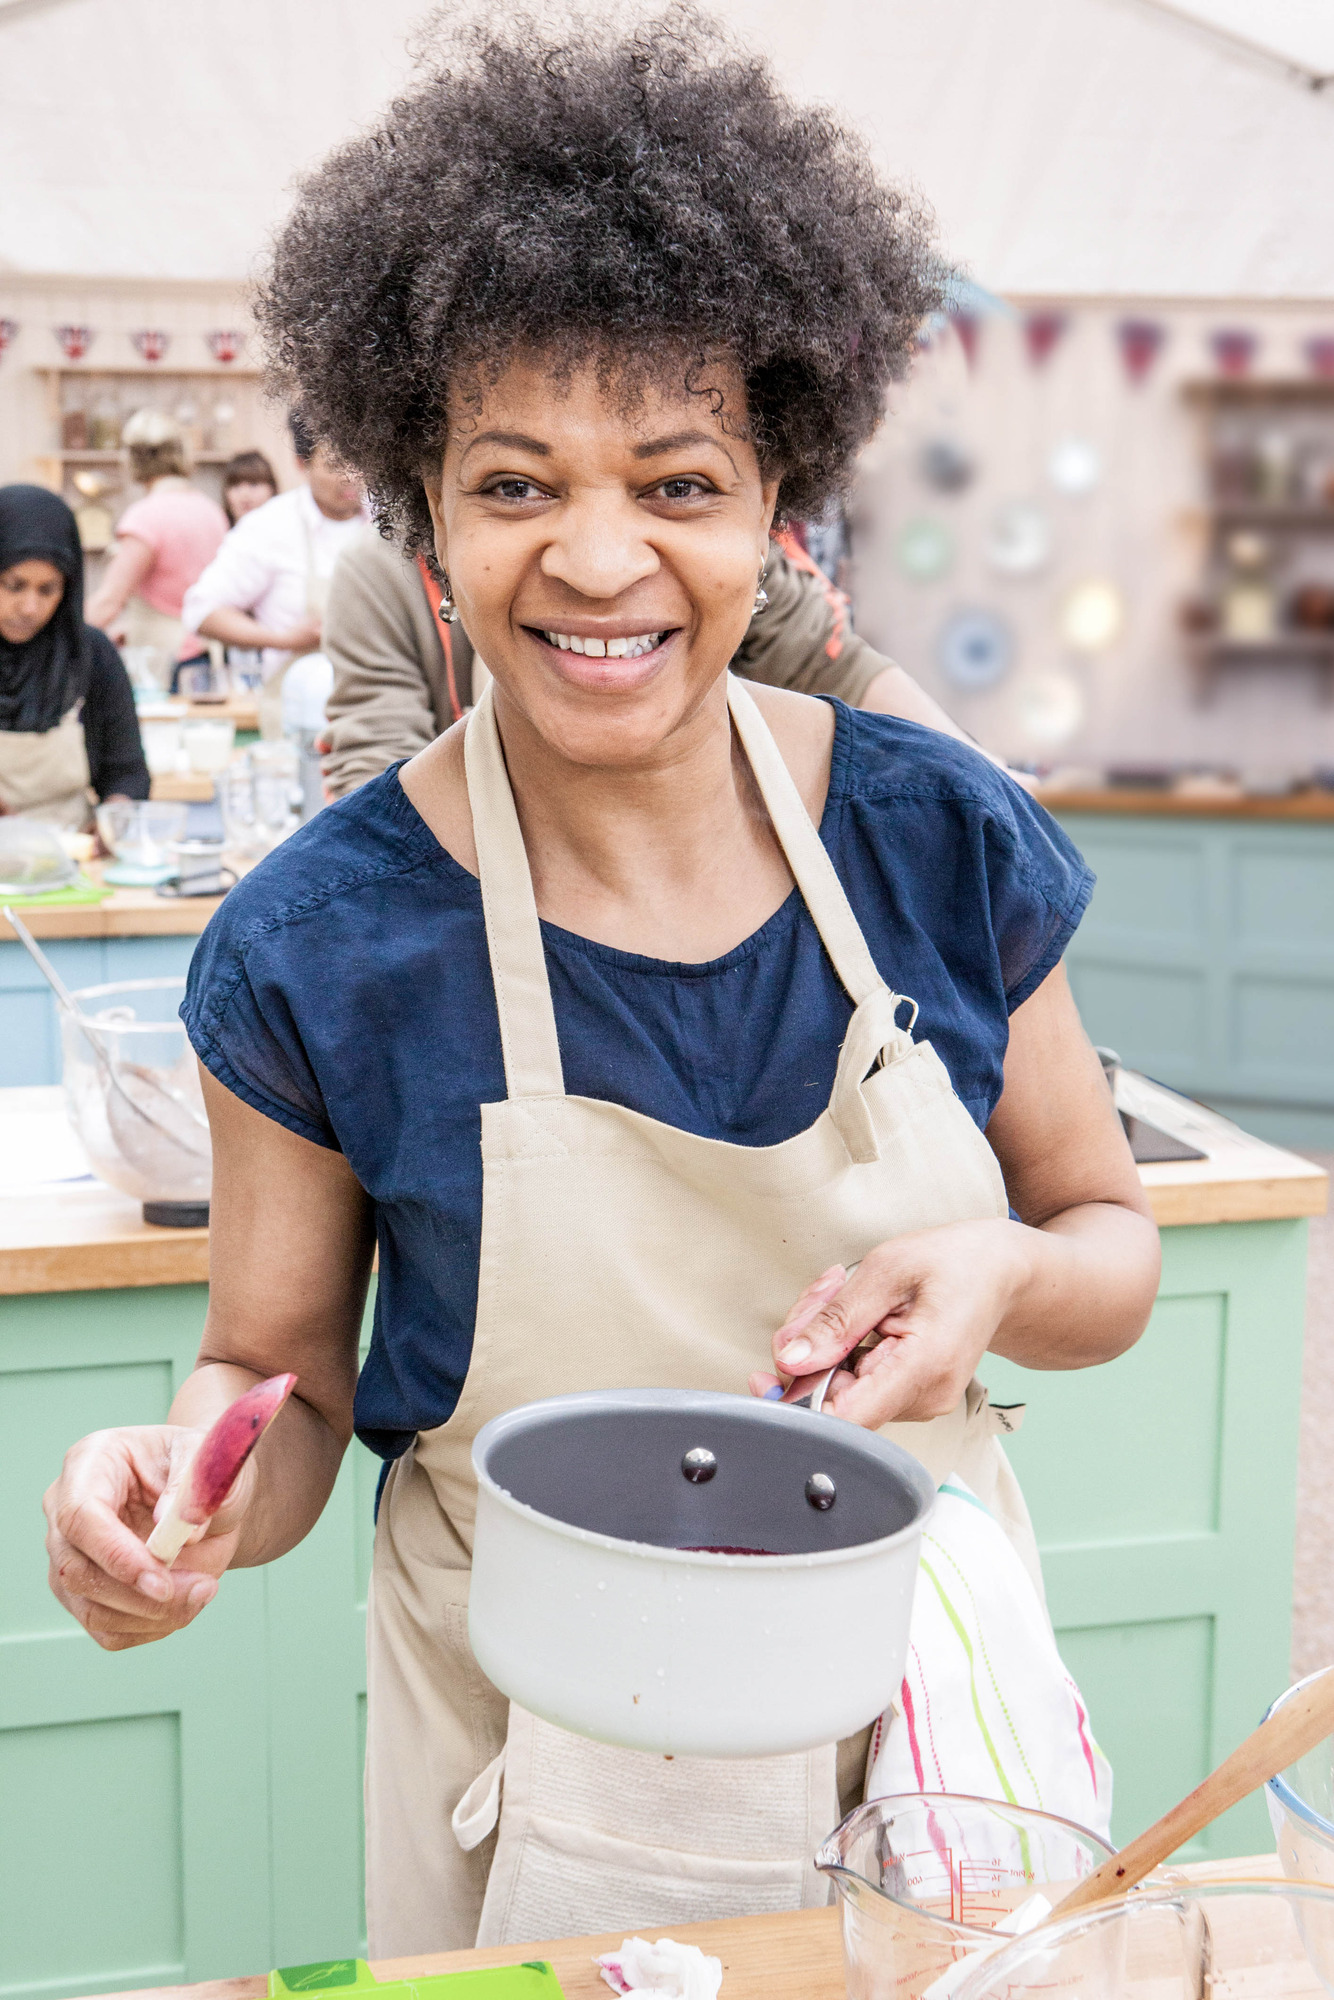 Dorret from The Great British Bake Off